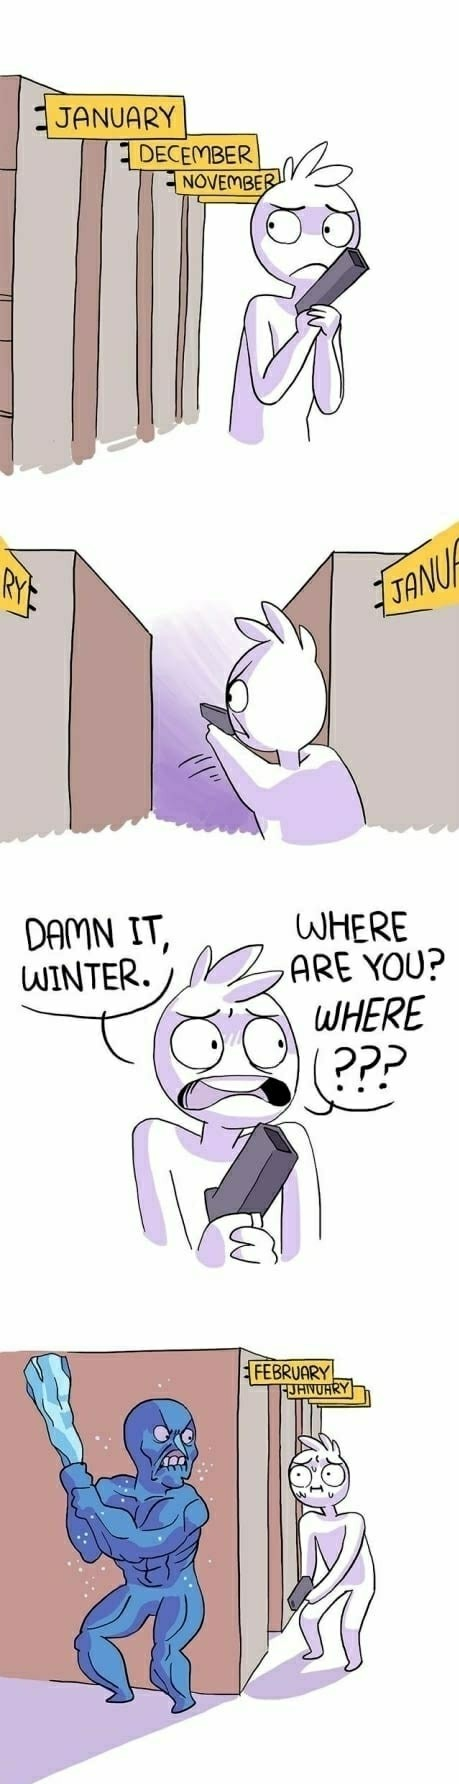 I hate winter - meme